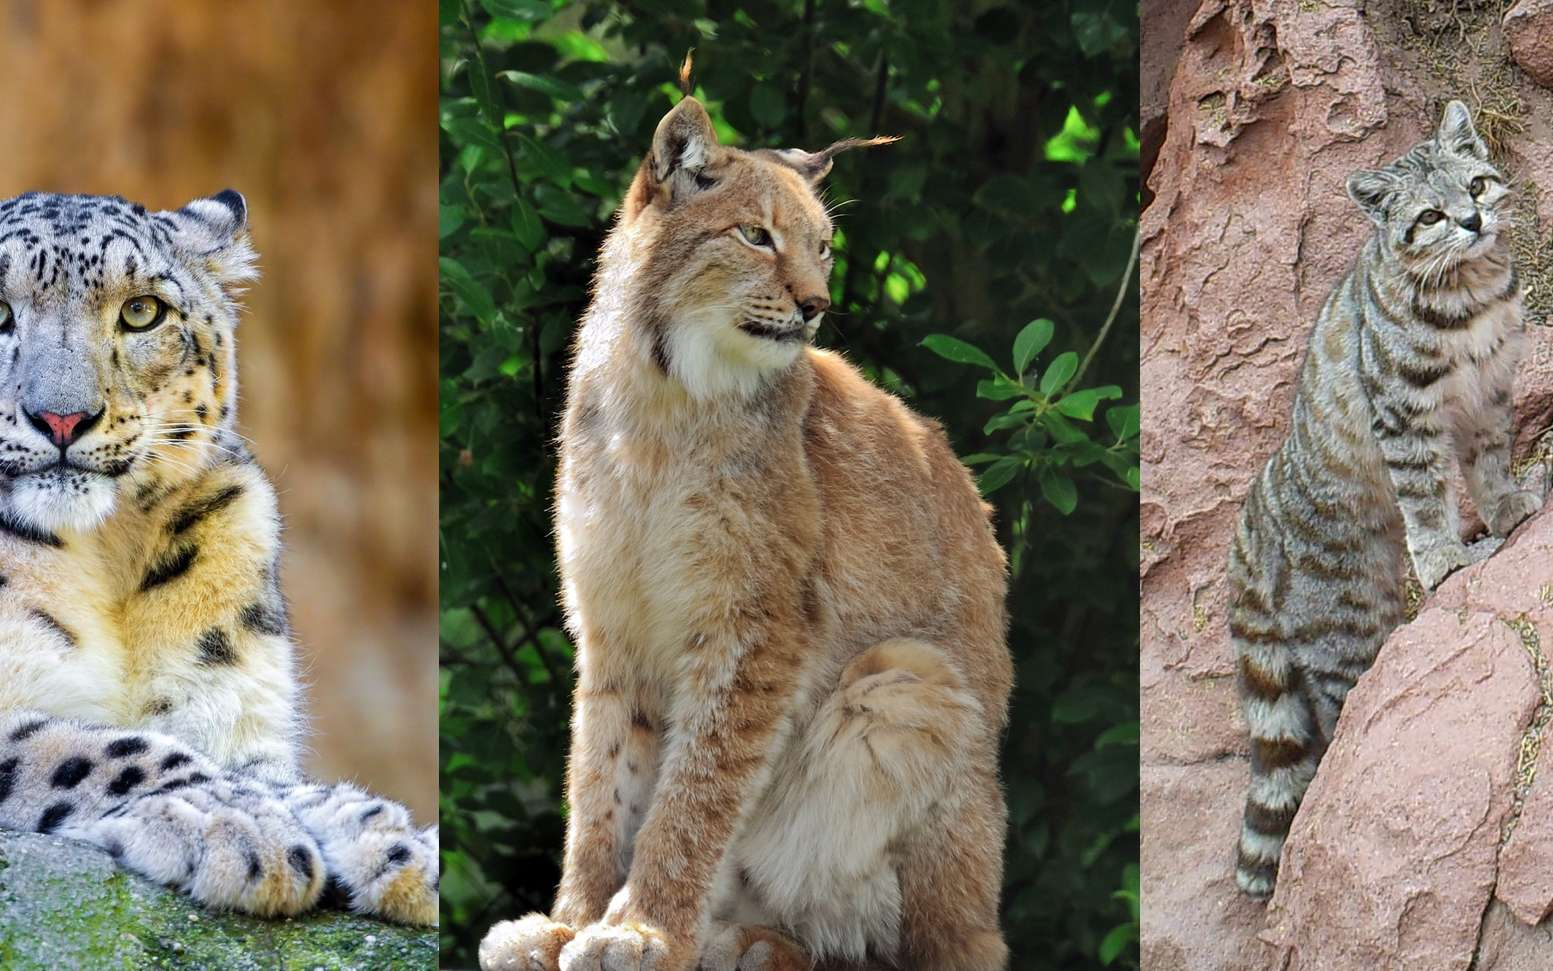 10 espèces de félins menacées d'extinction. © Tambako the Jaguar, Steve Slater, Andean Cat Alliance